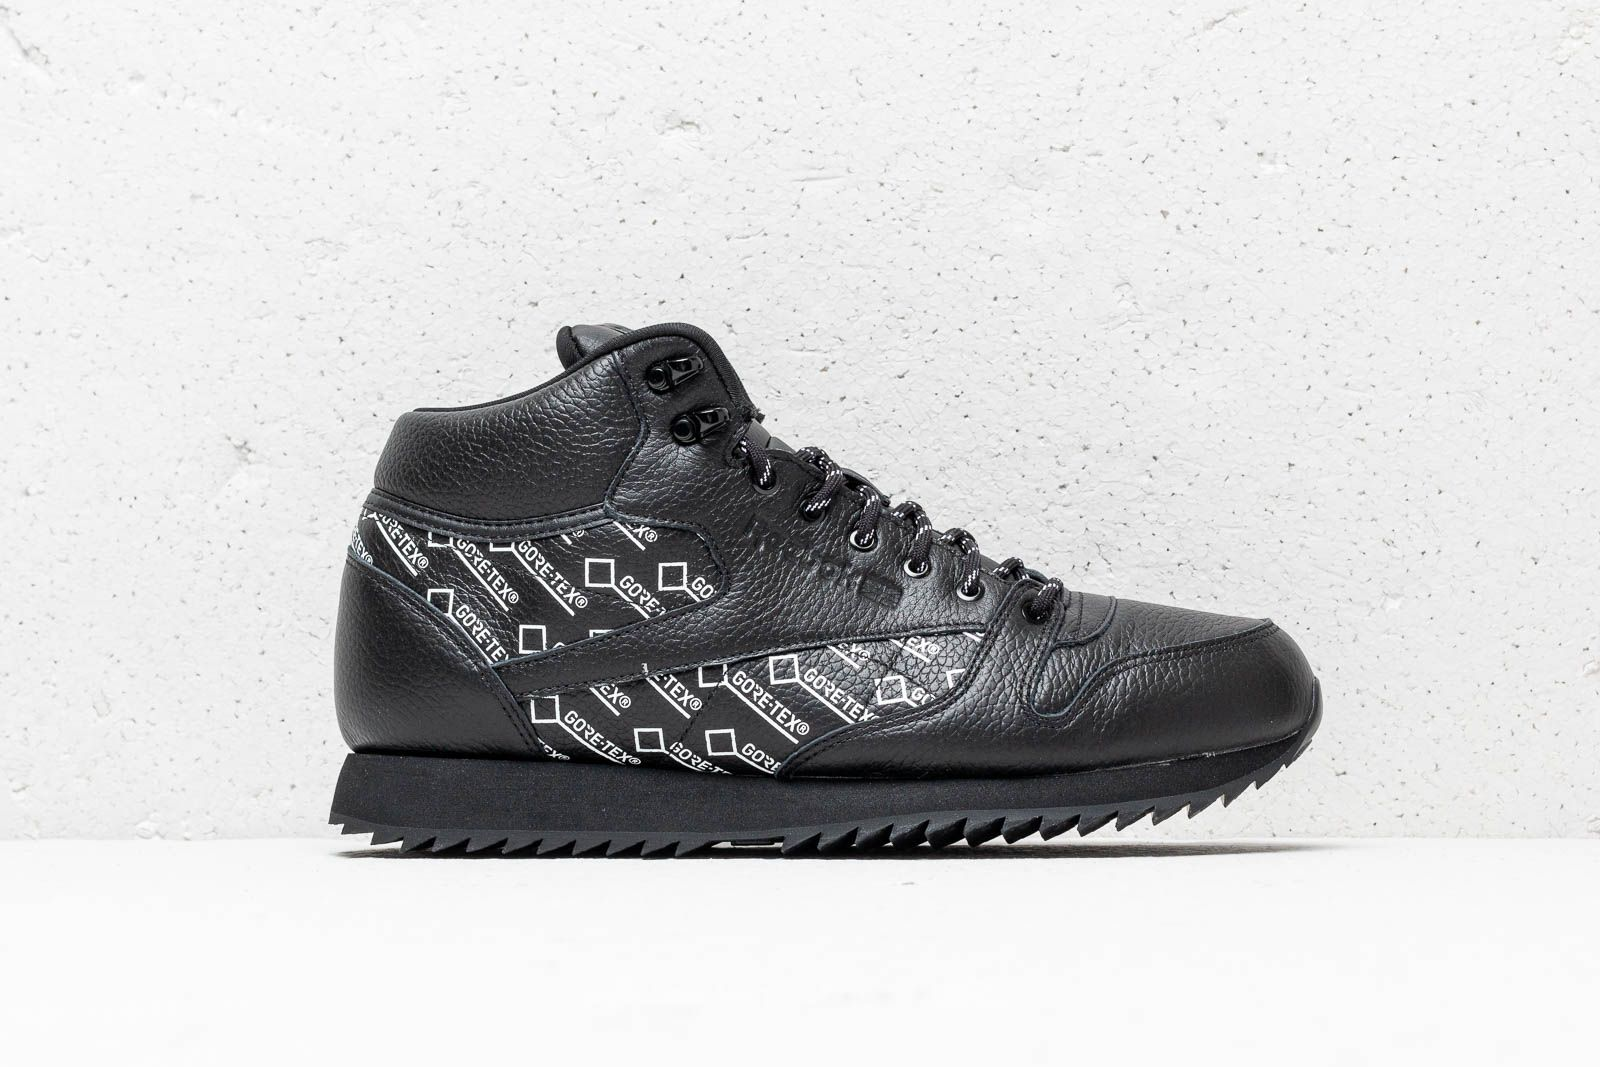 Reebok CL Leather Mid Ripple Gore-Tex Black  White at a great price 77 452943240